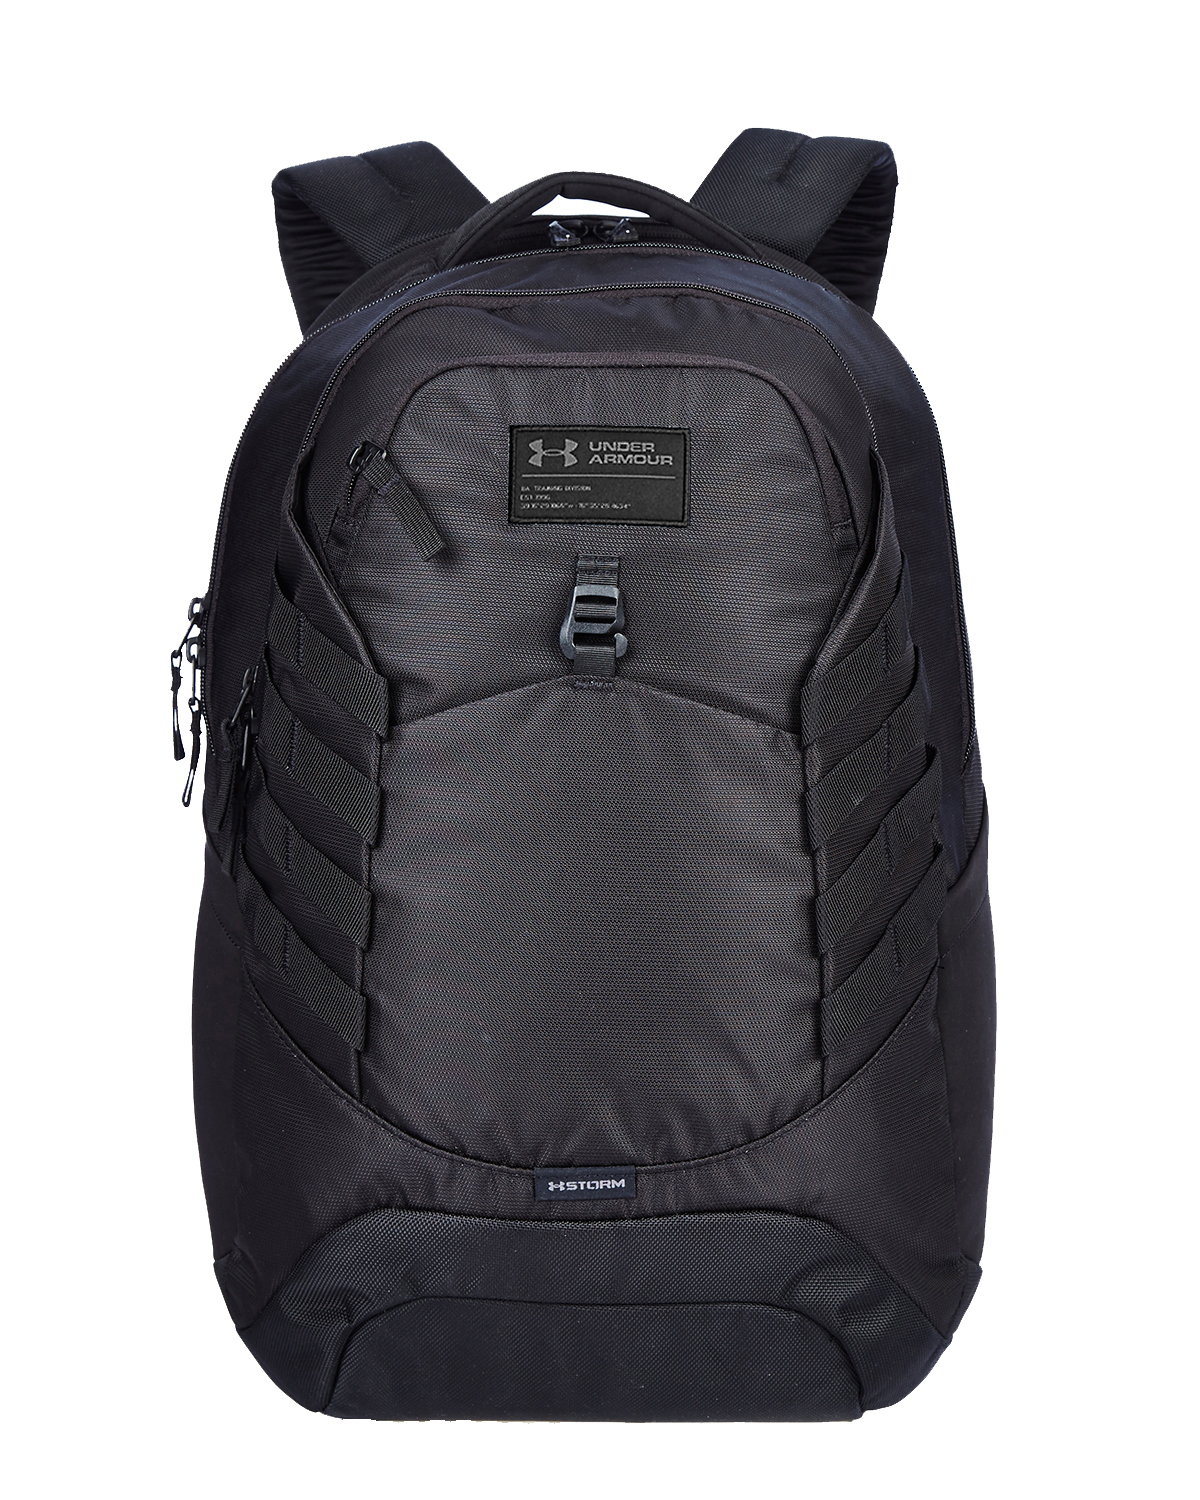 Under Armour 1319909 - Unisex Corporate Hudson Backpack